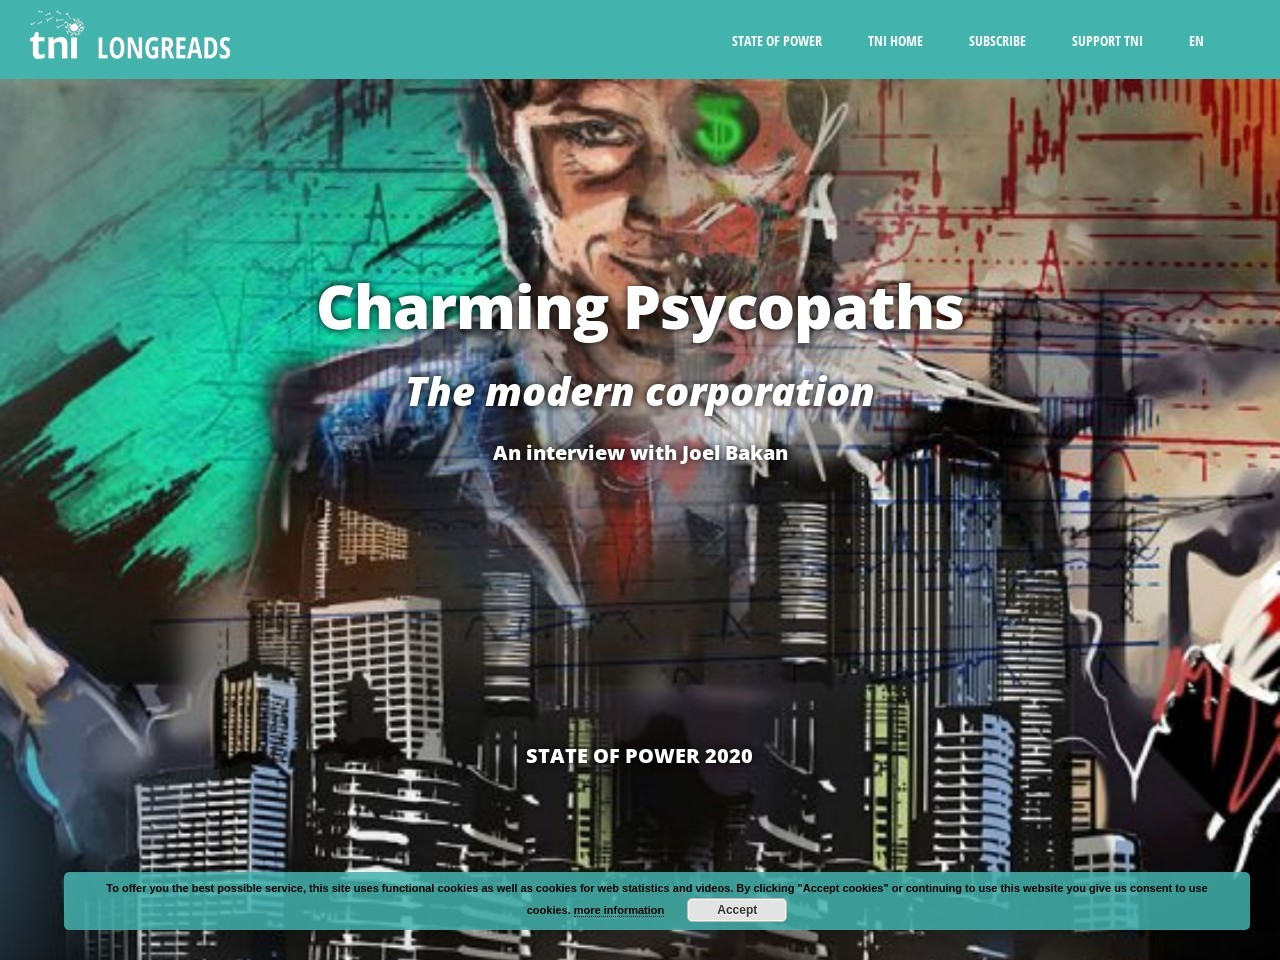 Charming psychopaths: The modern corporation